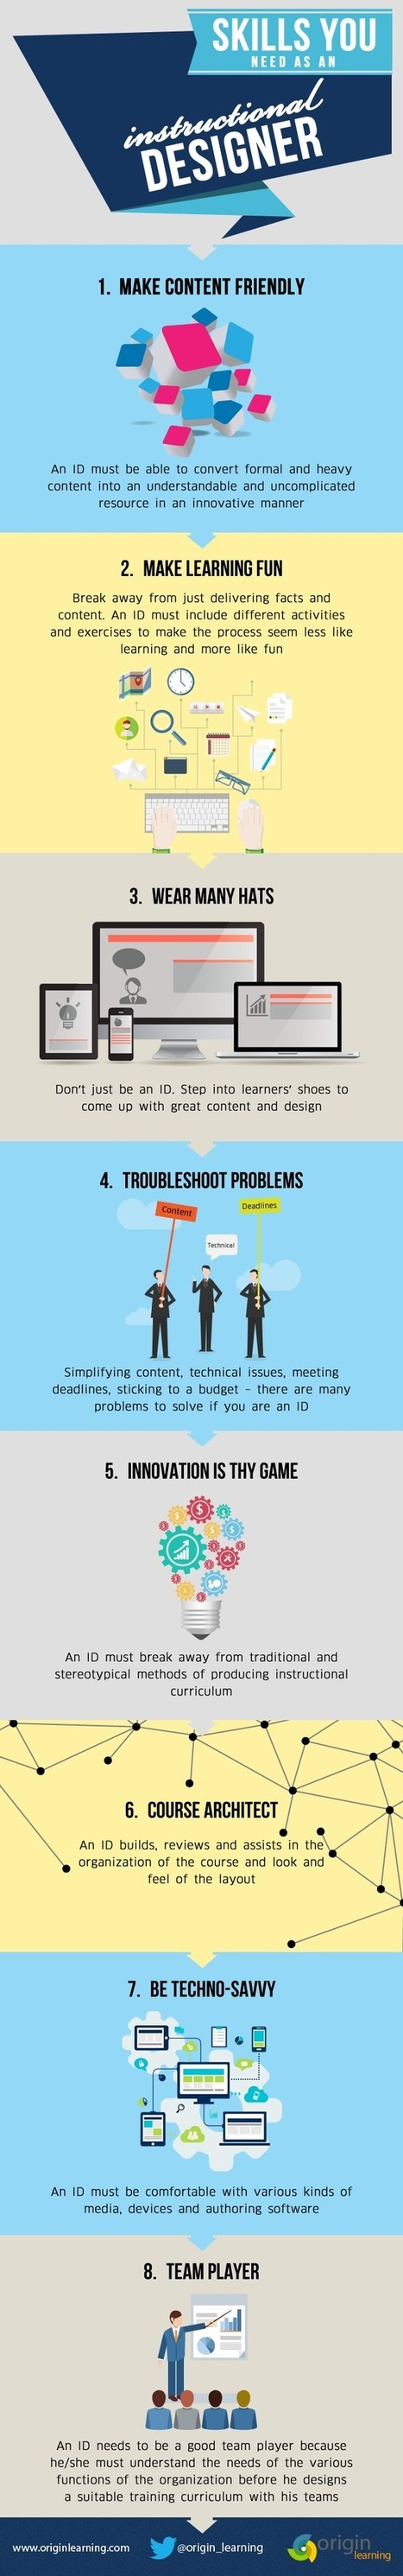 Top Instructional Designer's Skills Infographic - e-Learning Infographics | IPAD, un nuevo concepto socio-educativo! | Scoop.it